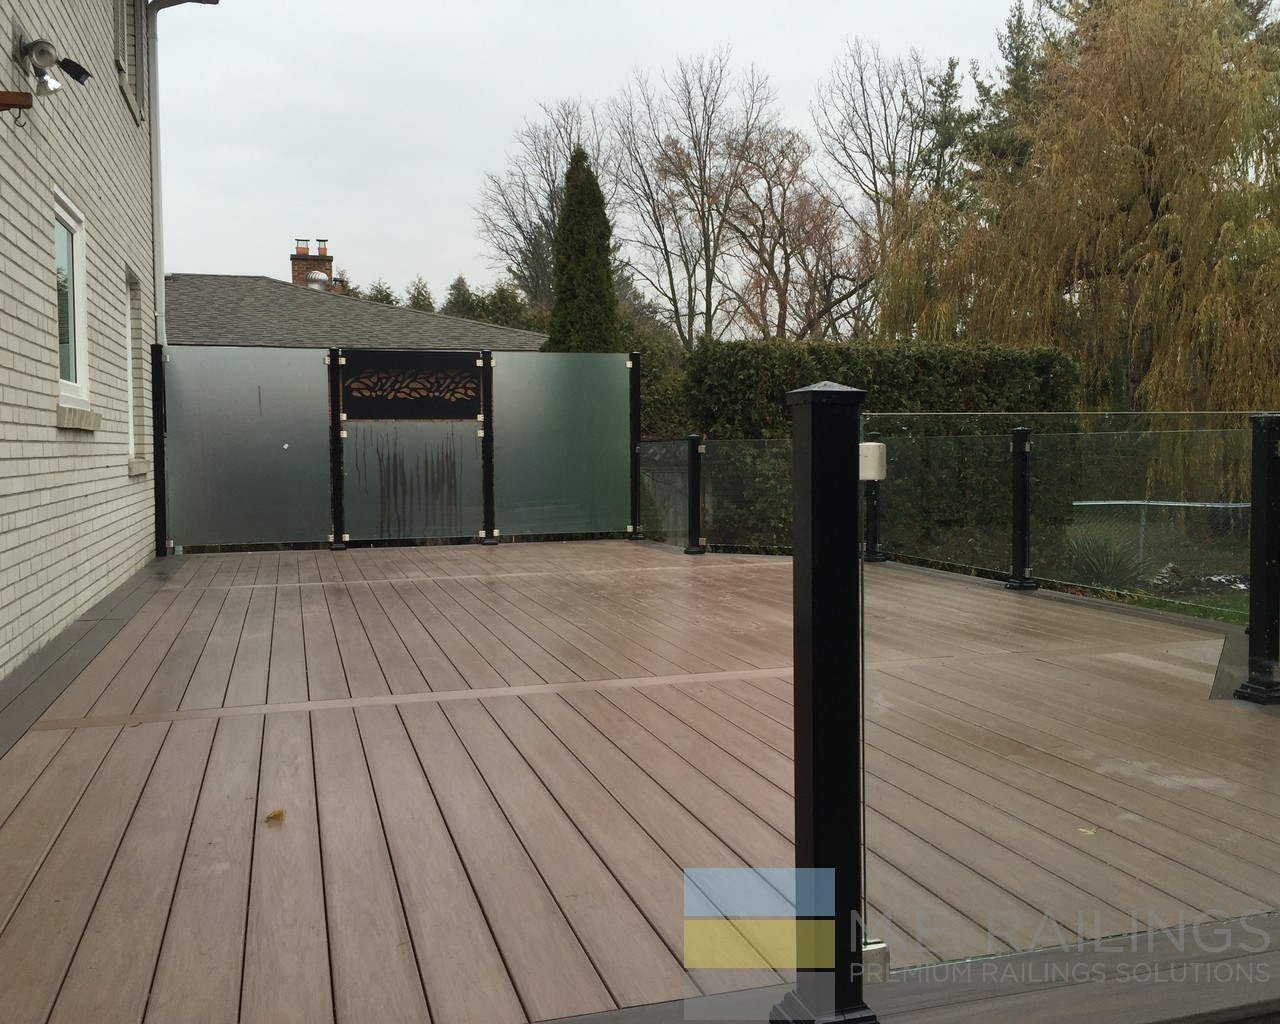 Aluminum Deck Railings With Glass Toronto Railings Provides Exterior Interior And Stairway